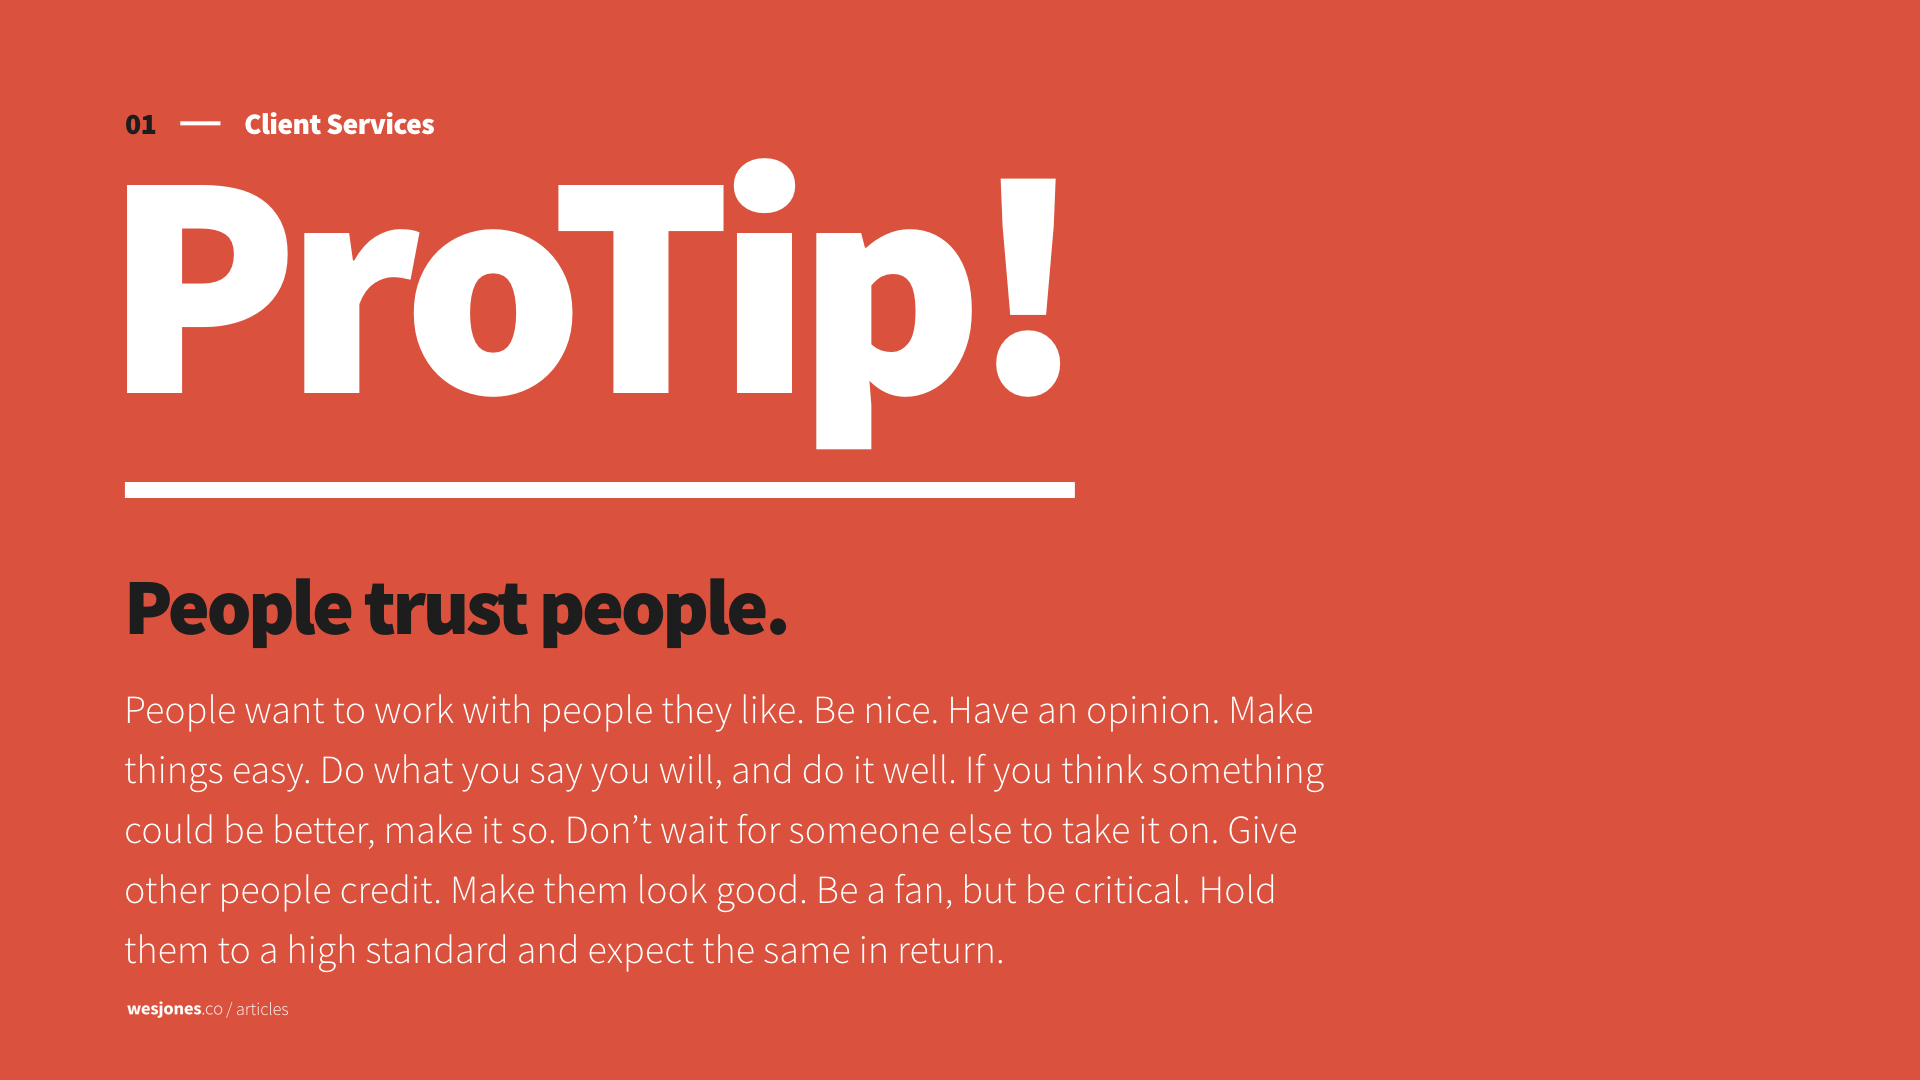 wesjonesco-protip-people-trust-people-banner-text.jpeg